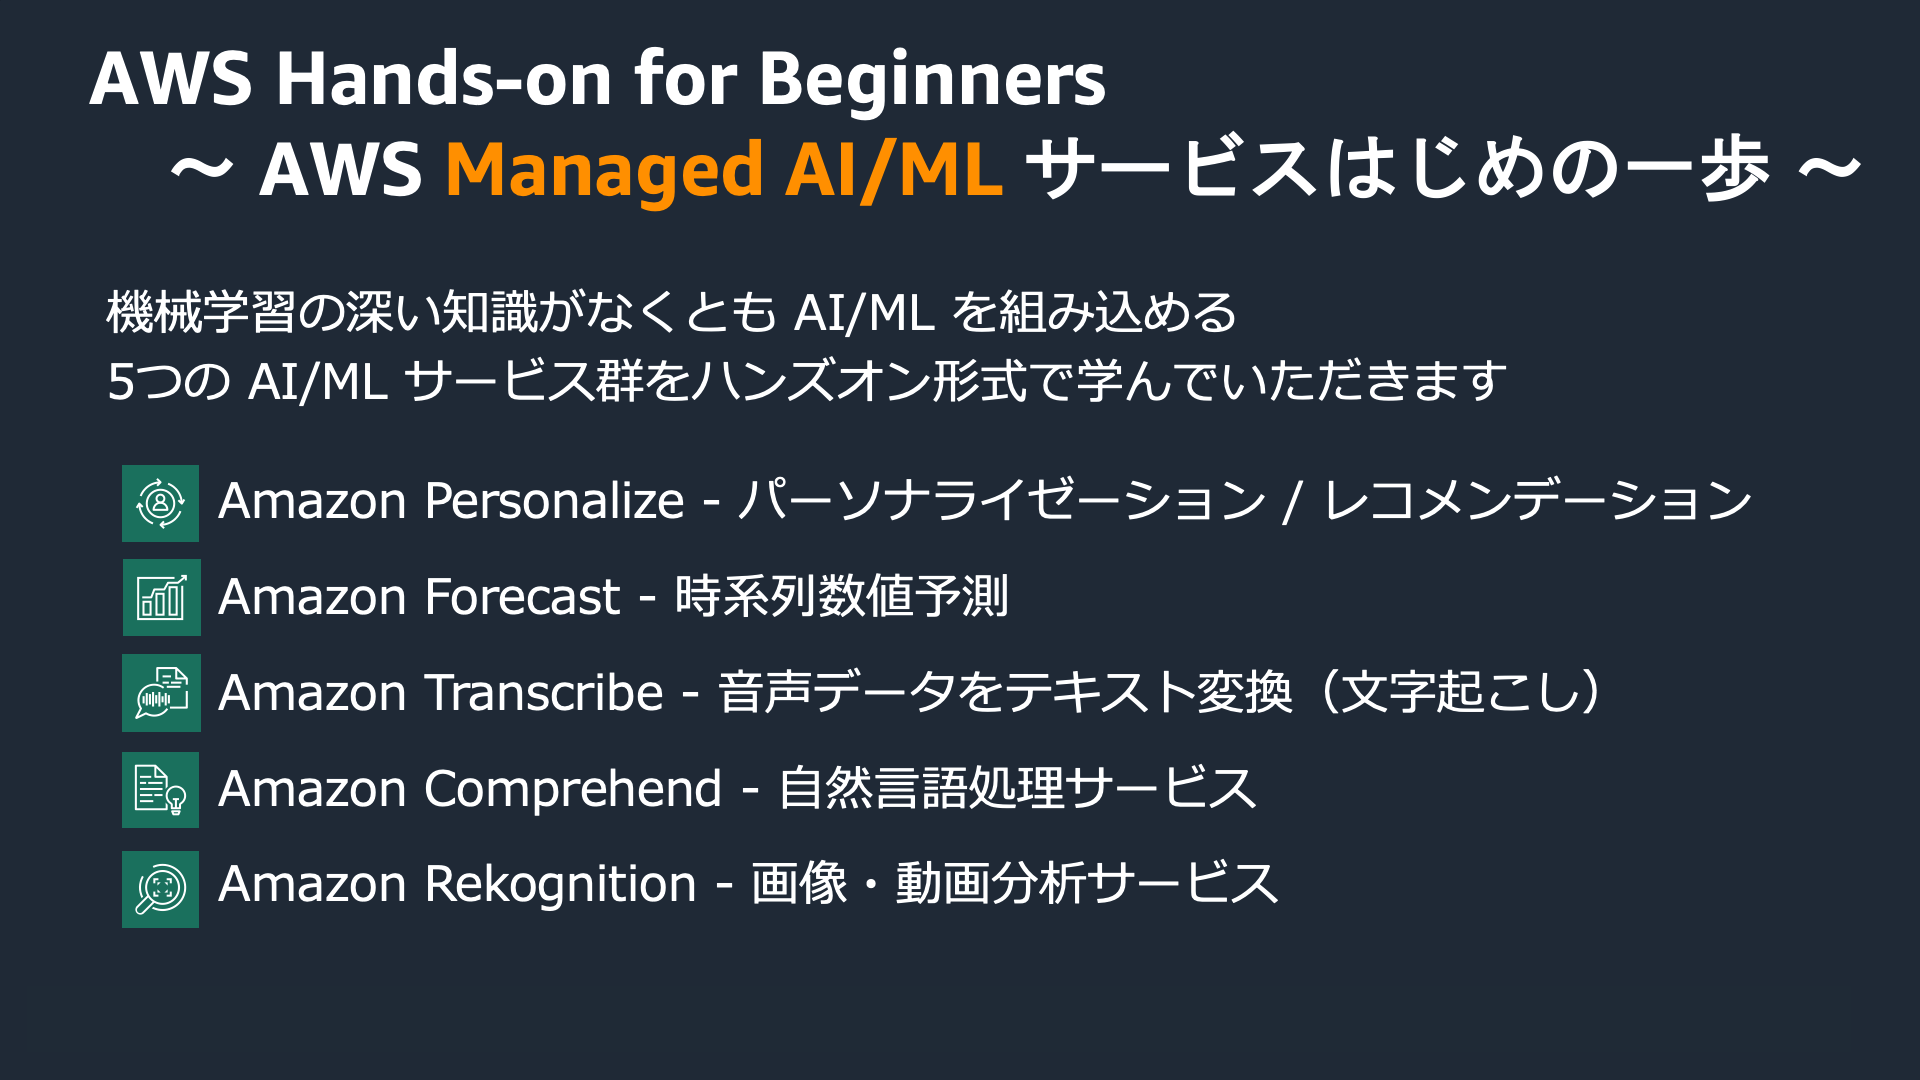 20210225_AWS_Hands-on_for_Beginners_Managed_AIML